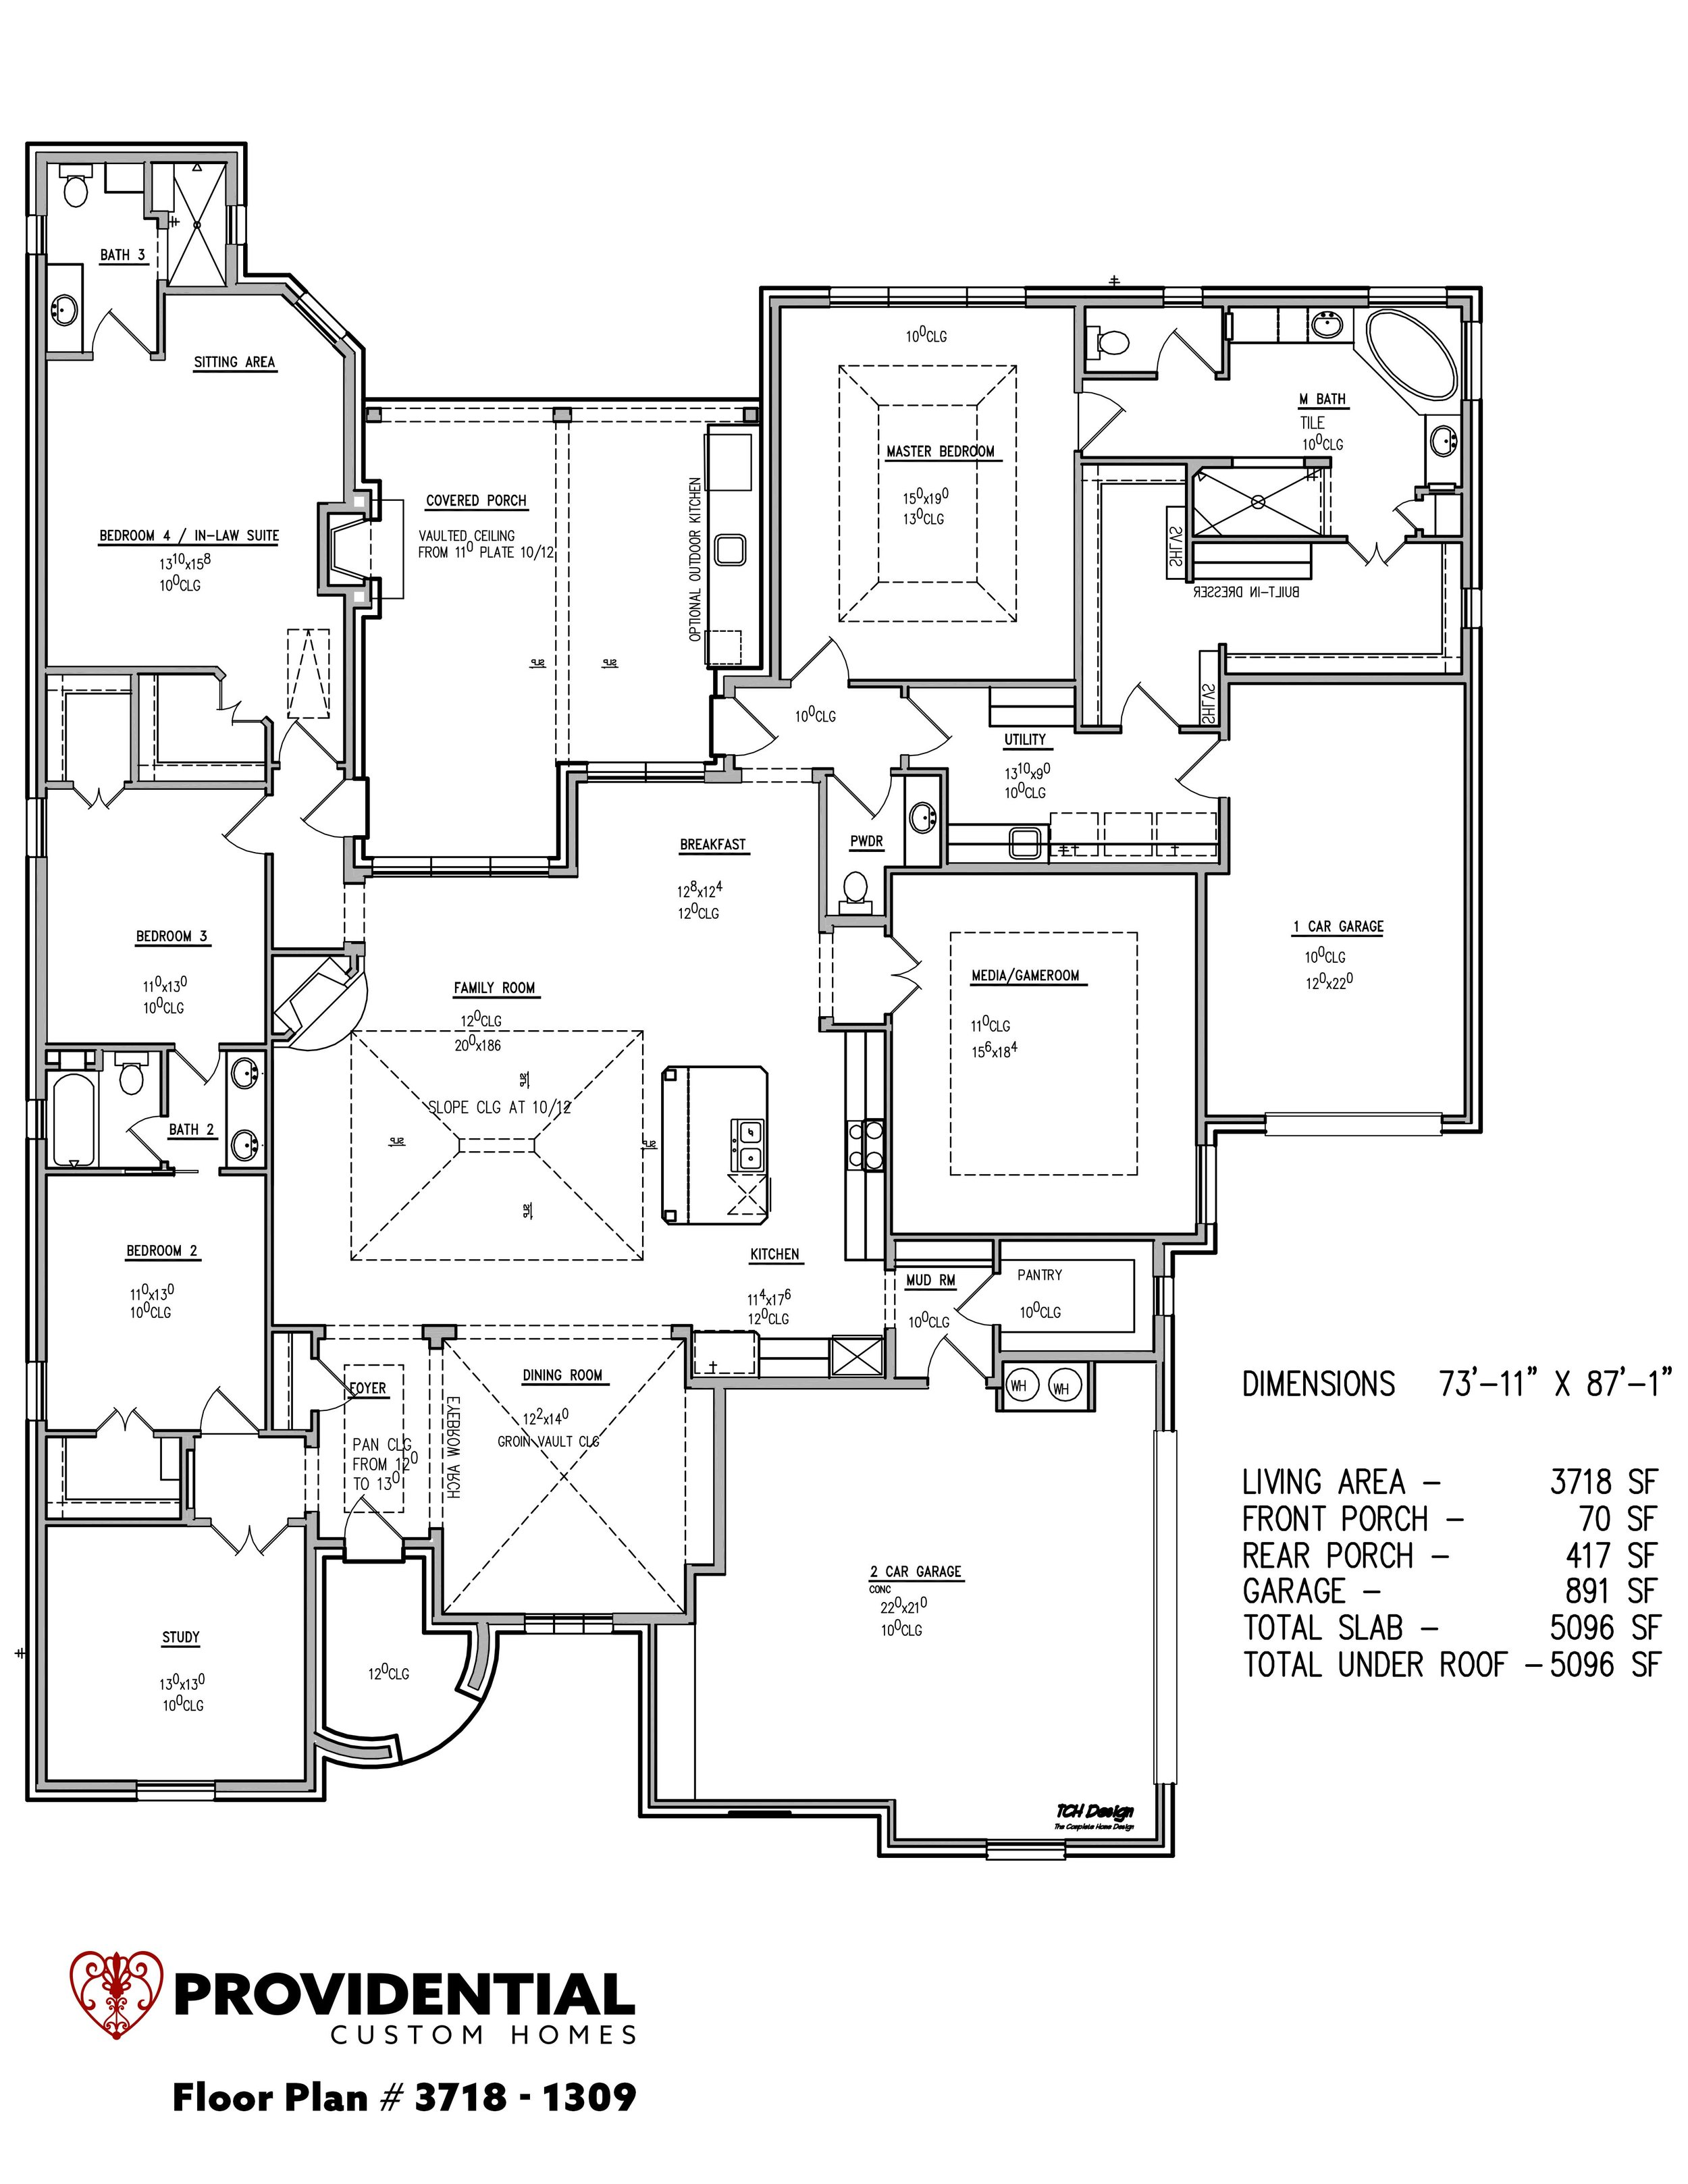 The FLOOR PLAN #3718 - 1309.jpg